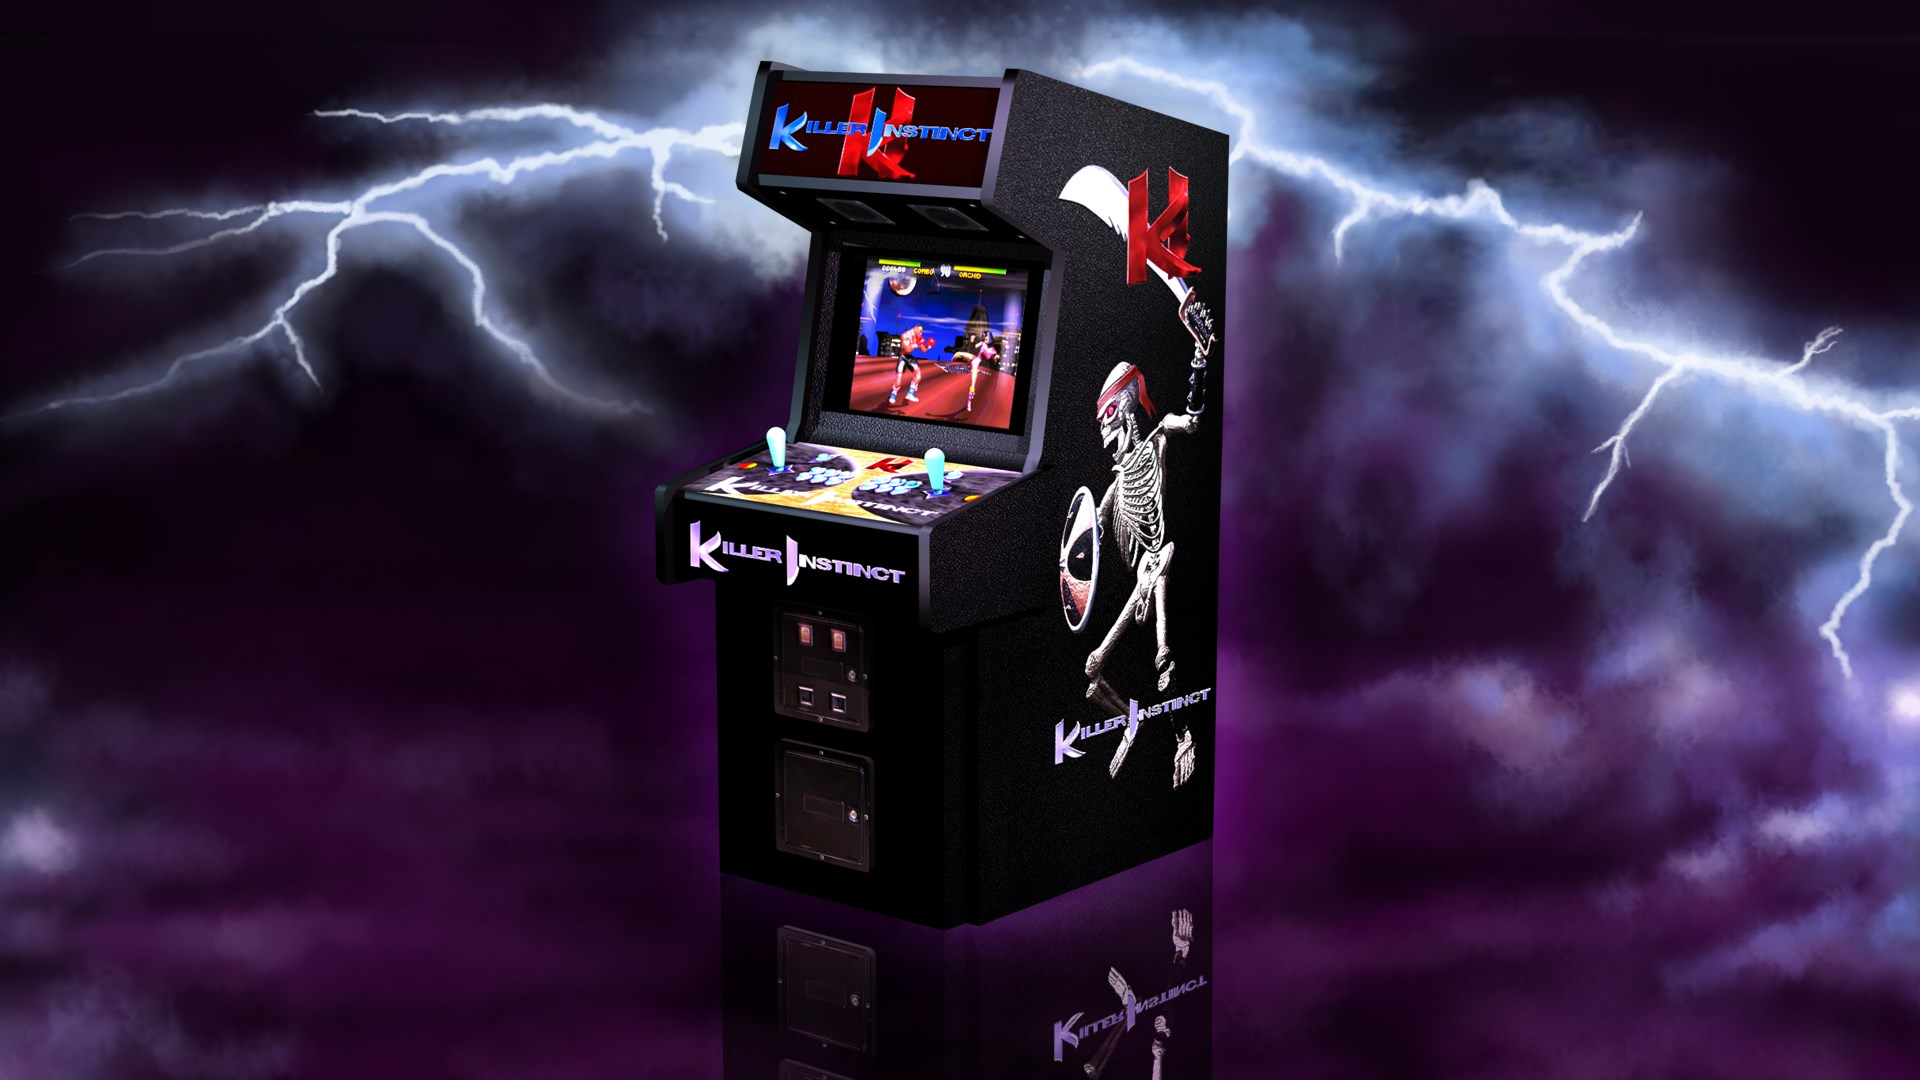 Image result for killer instinct arcade